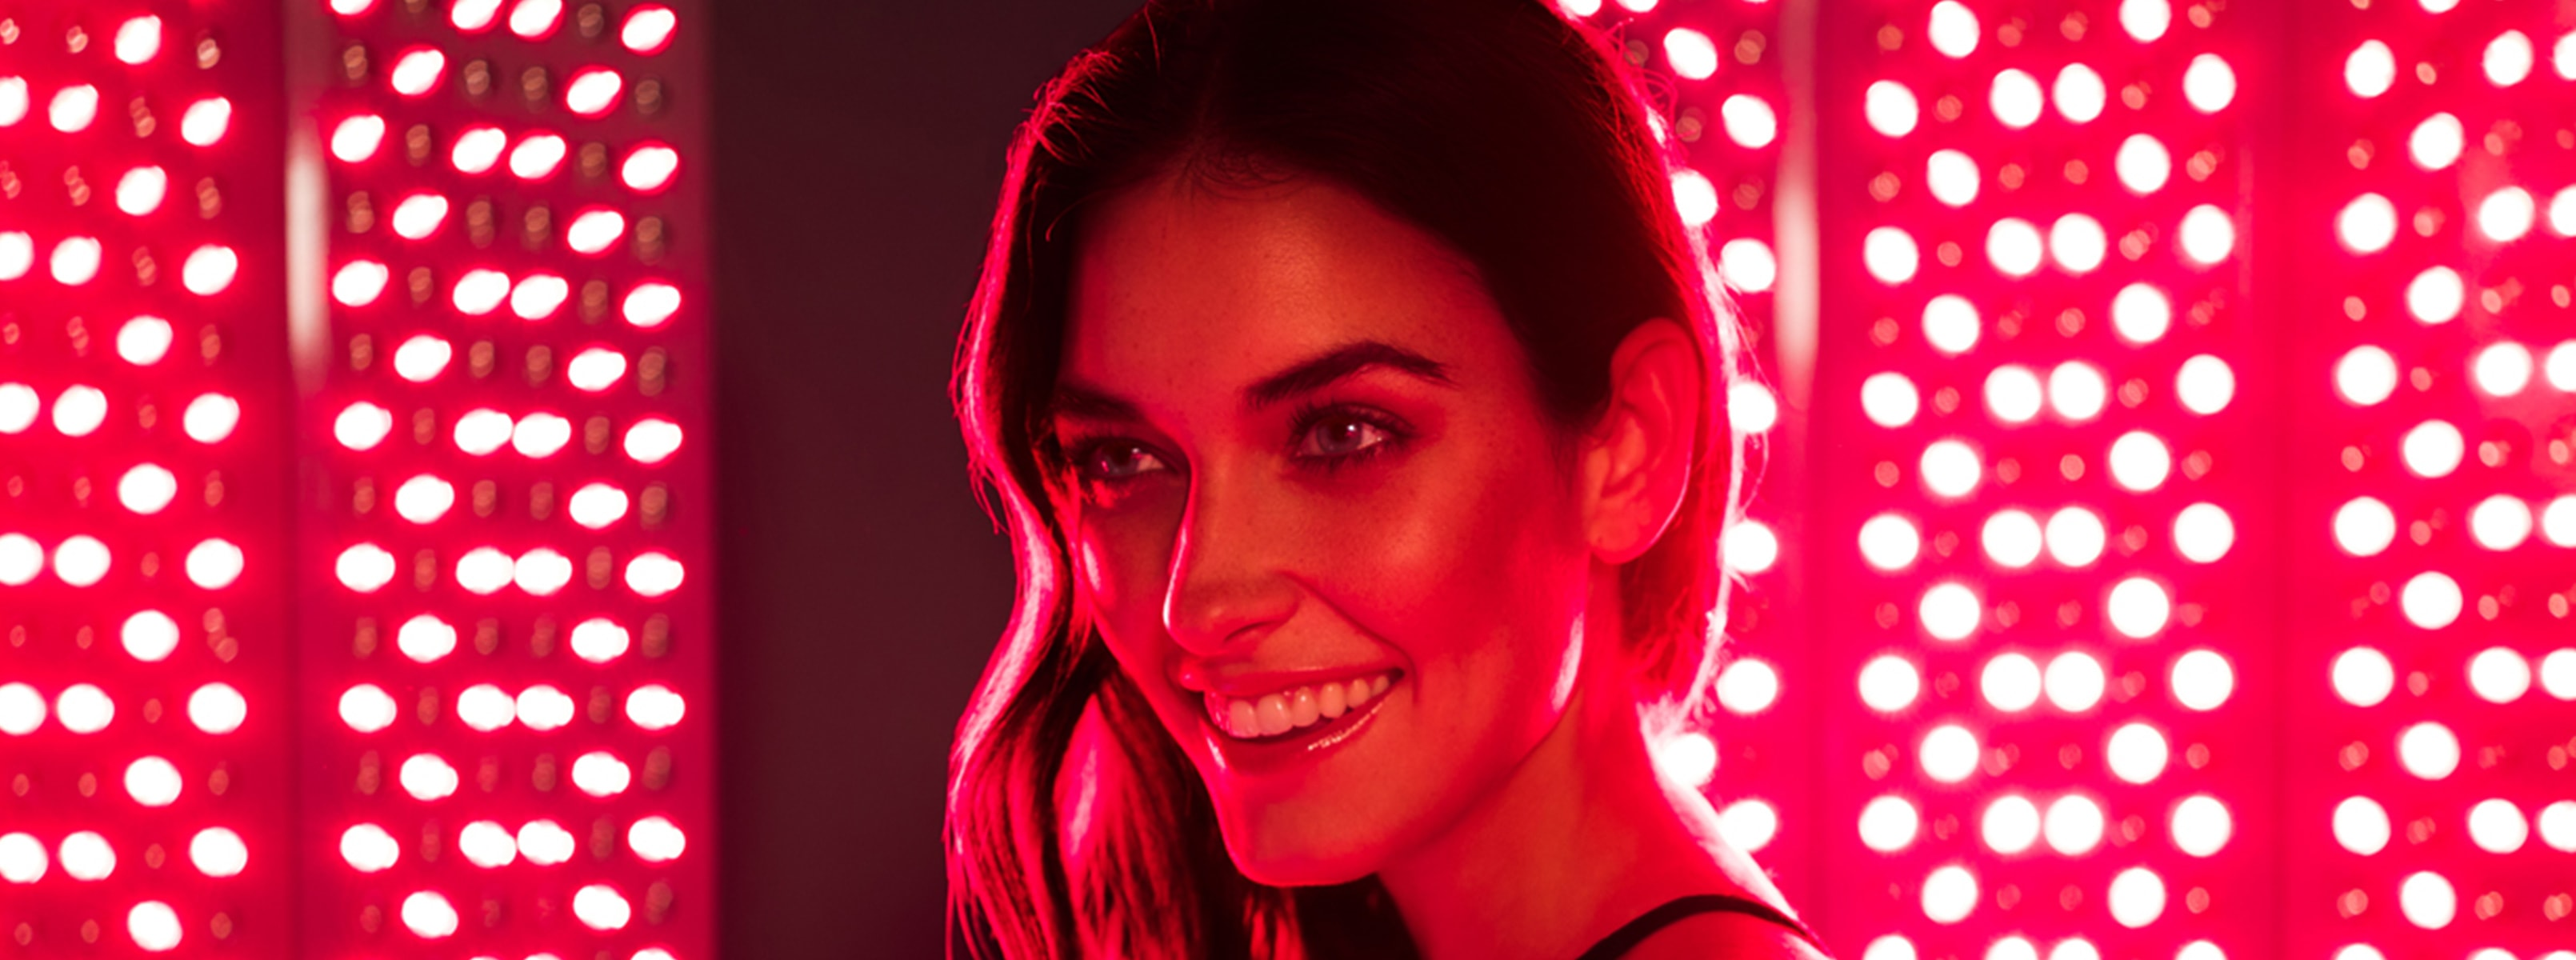 Red Light Therapy Model